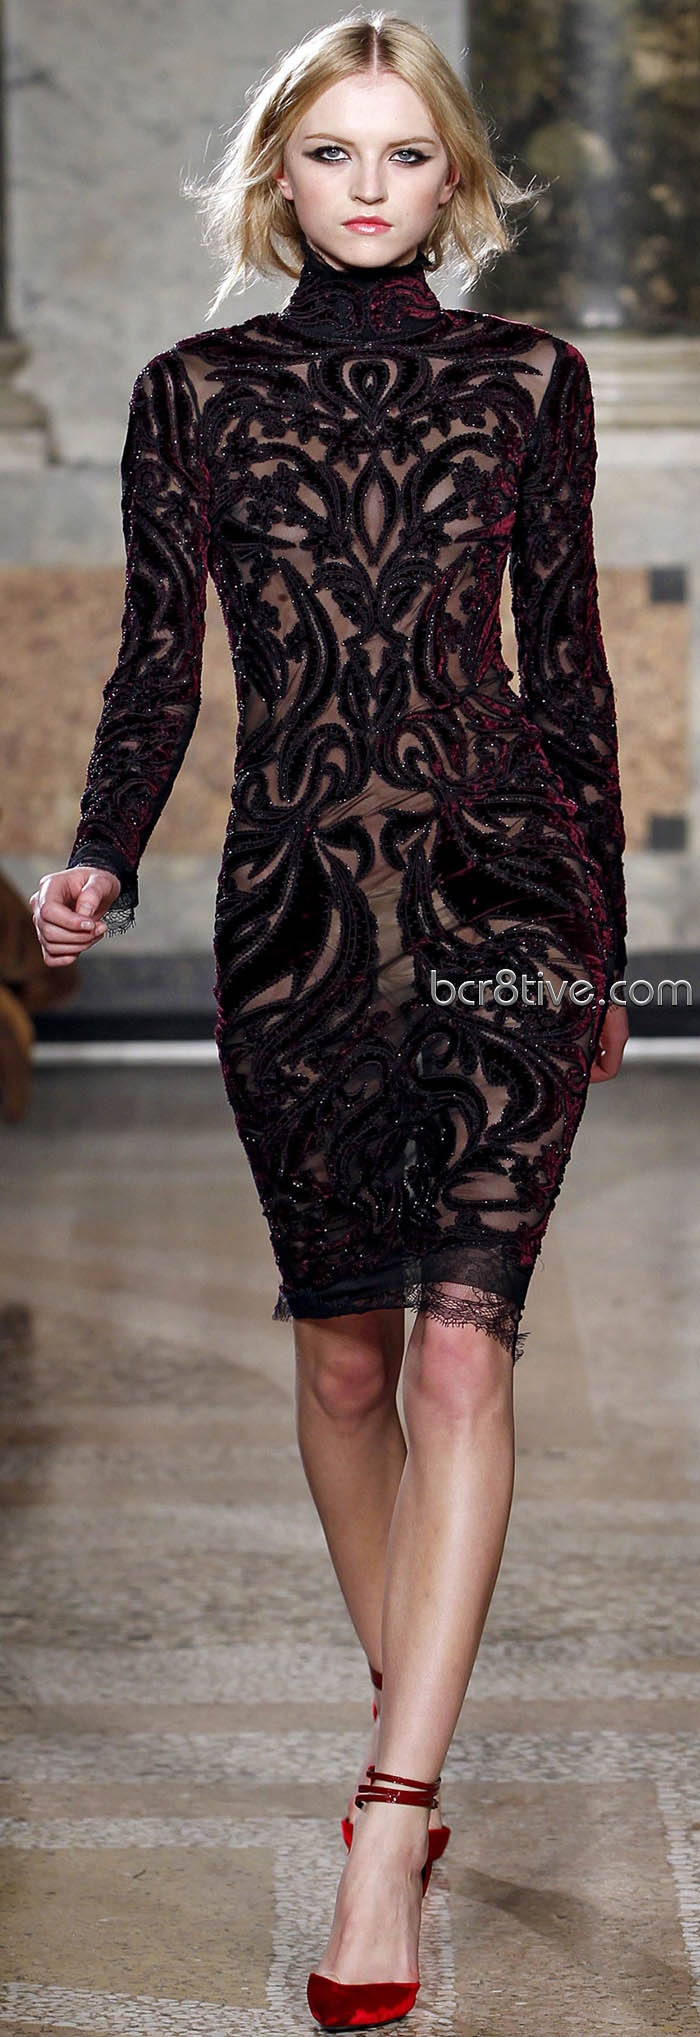 Black lace dress red shoes   best Leather u Lace images on Pinterest  Night Dresses with